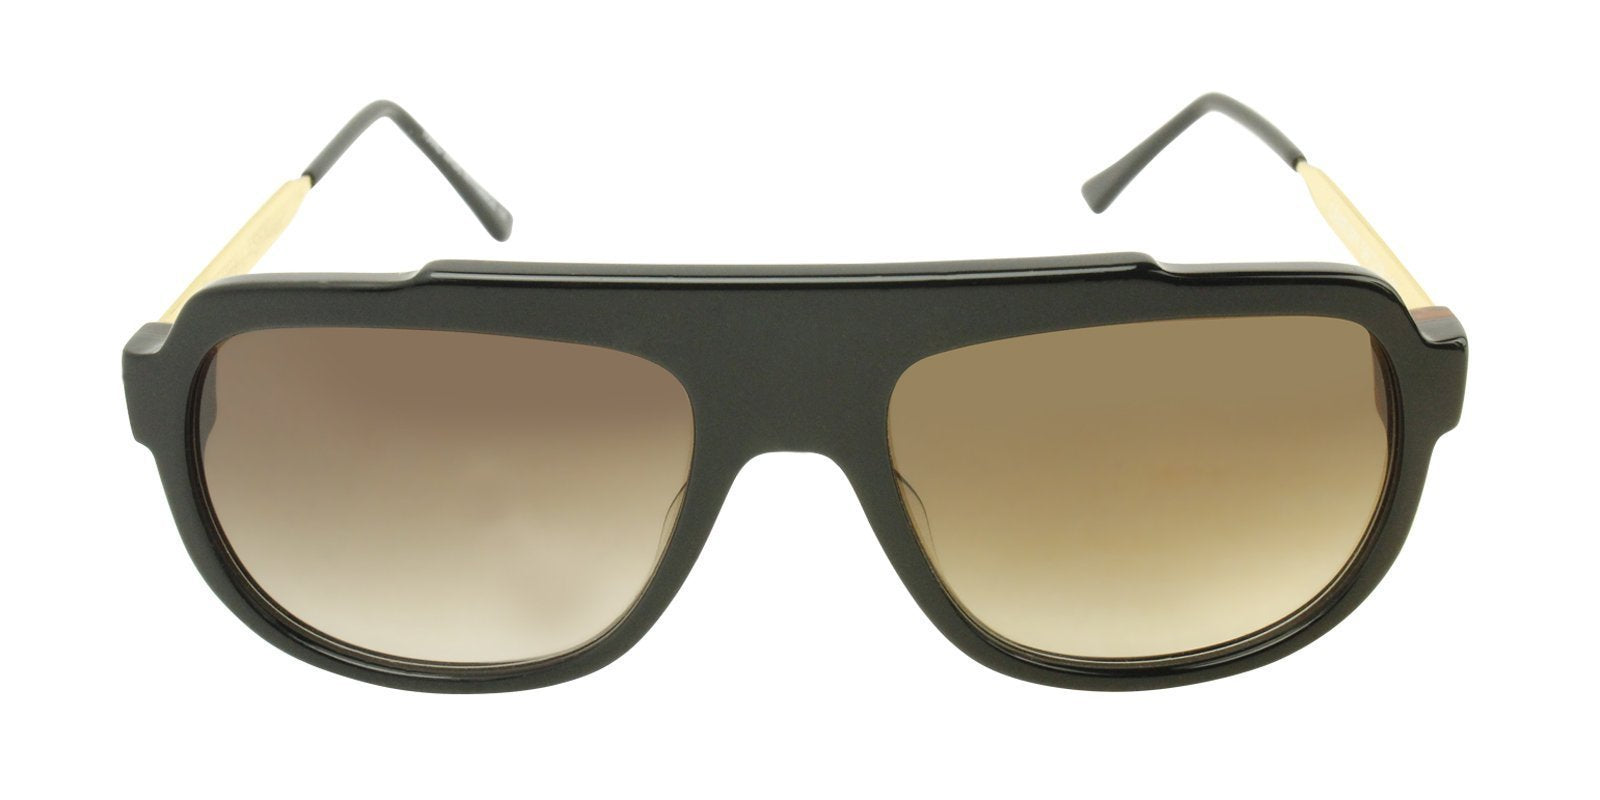 Thierry Lasry - Century Black Rectangular Men, Women Sunglasses - 56mm-Sunglasses-Designer Eyes